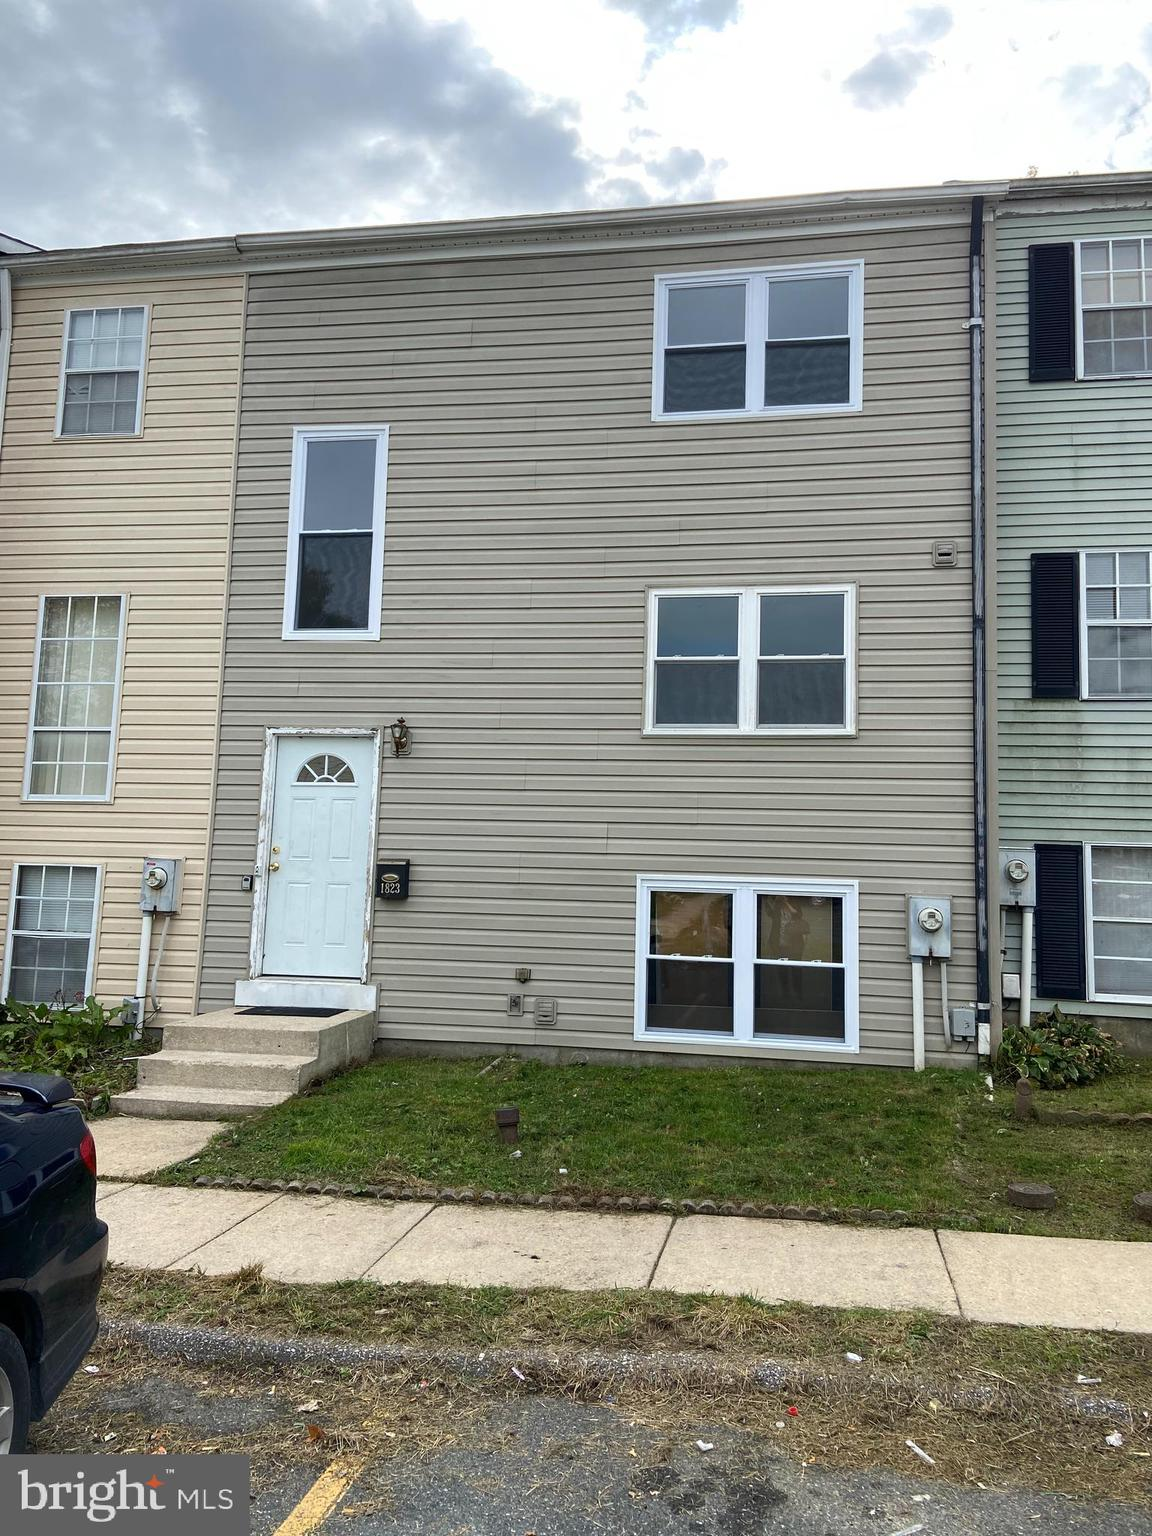 Completely remodeled and ready for a new owner!  Spacious 3 bedroom townhome offers new white kitche